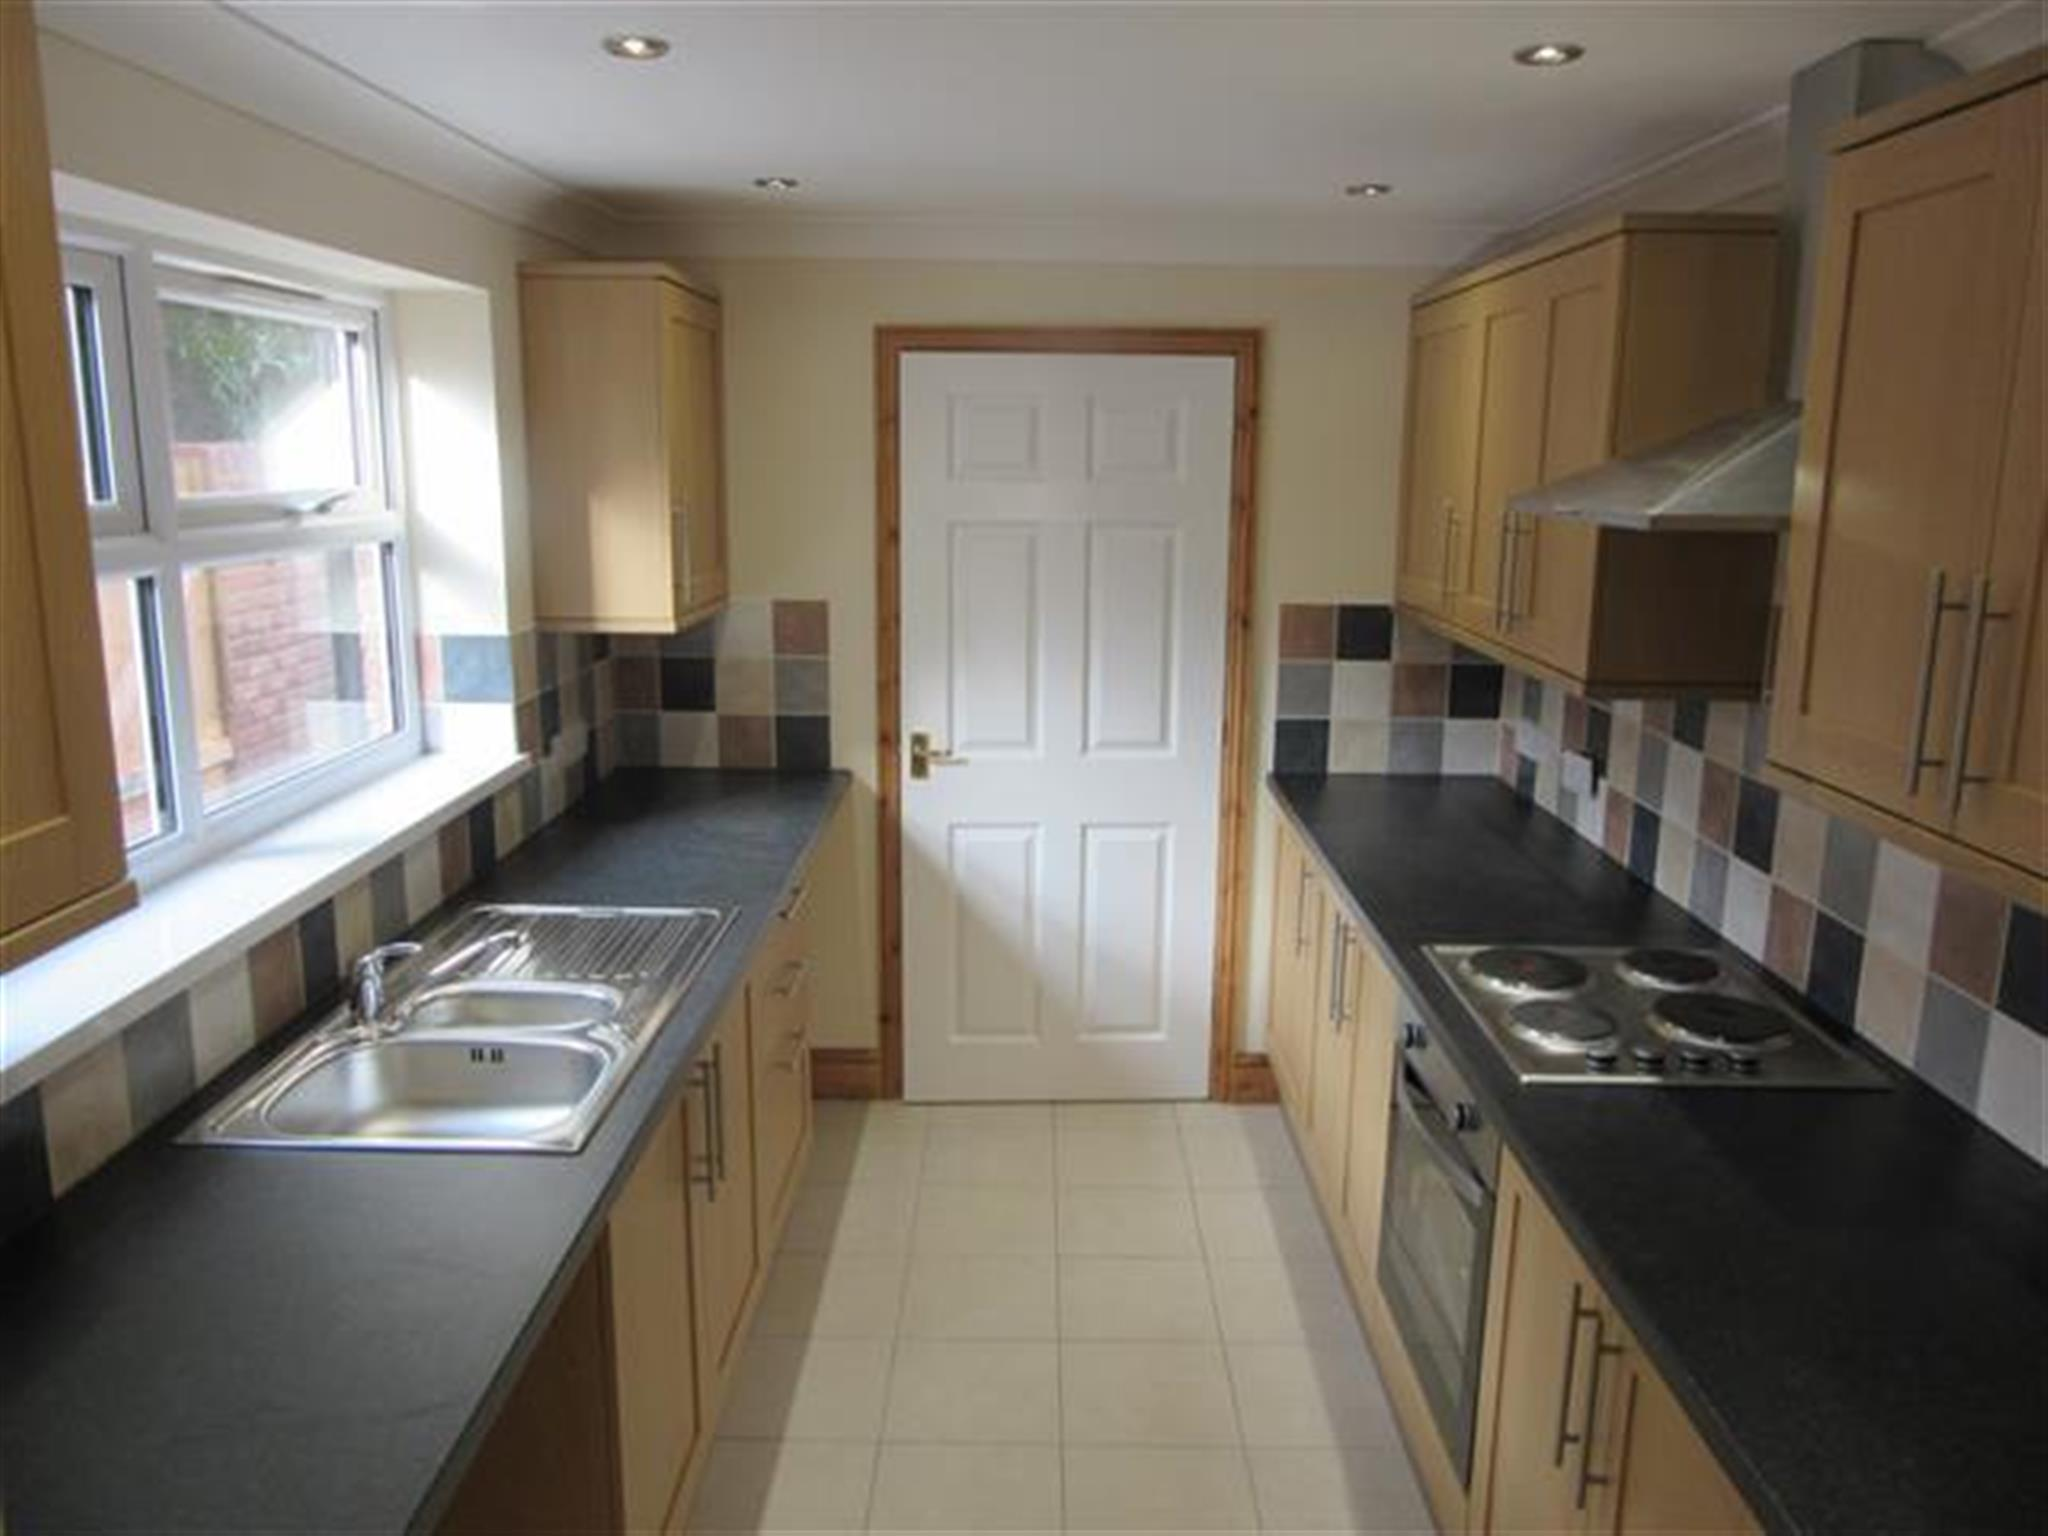 3 bedroom house to rent cathcart street lowestoft nr32 1sd for Lowestoft bathroom centre